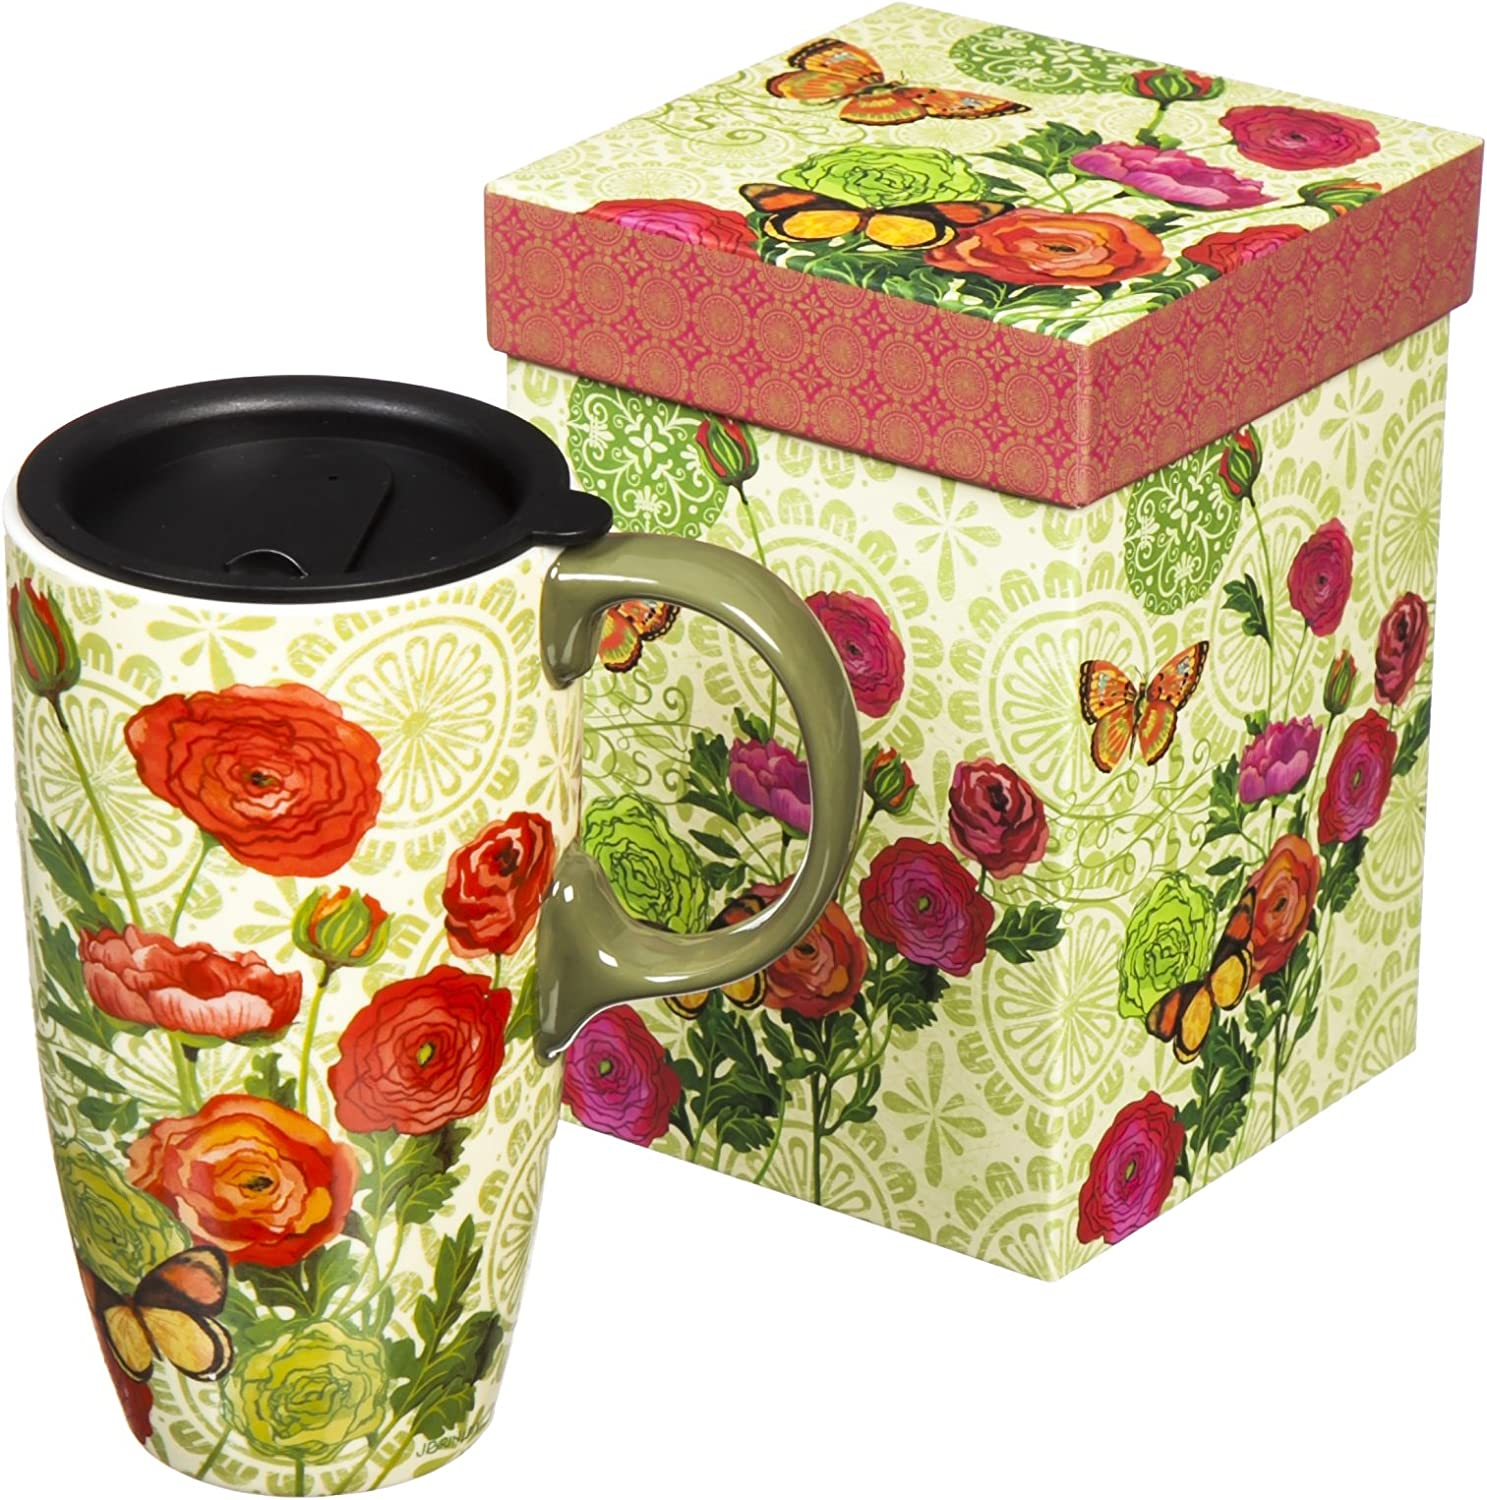 Botanica 17 oz. Boxed Ceramic Latte Travel Cup